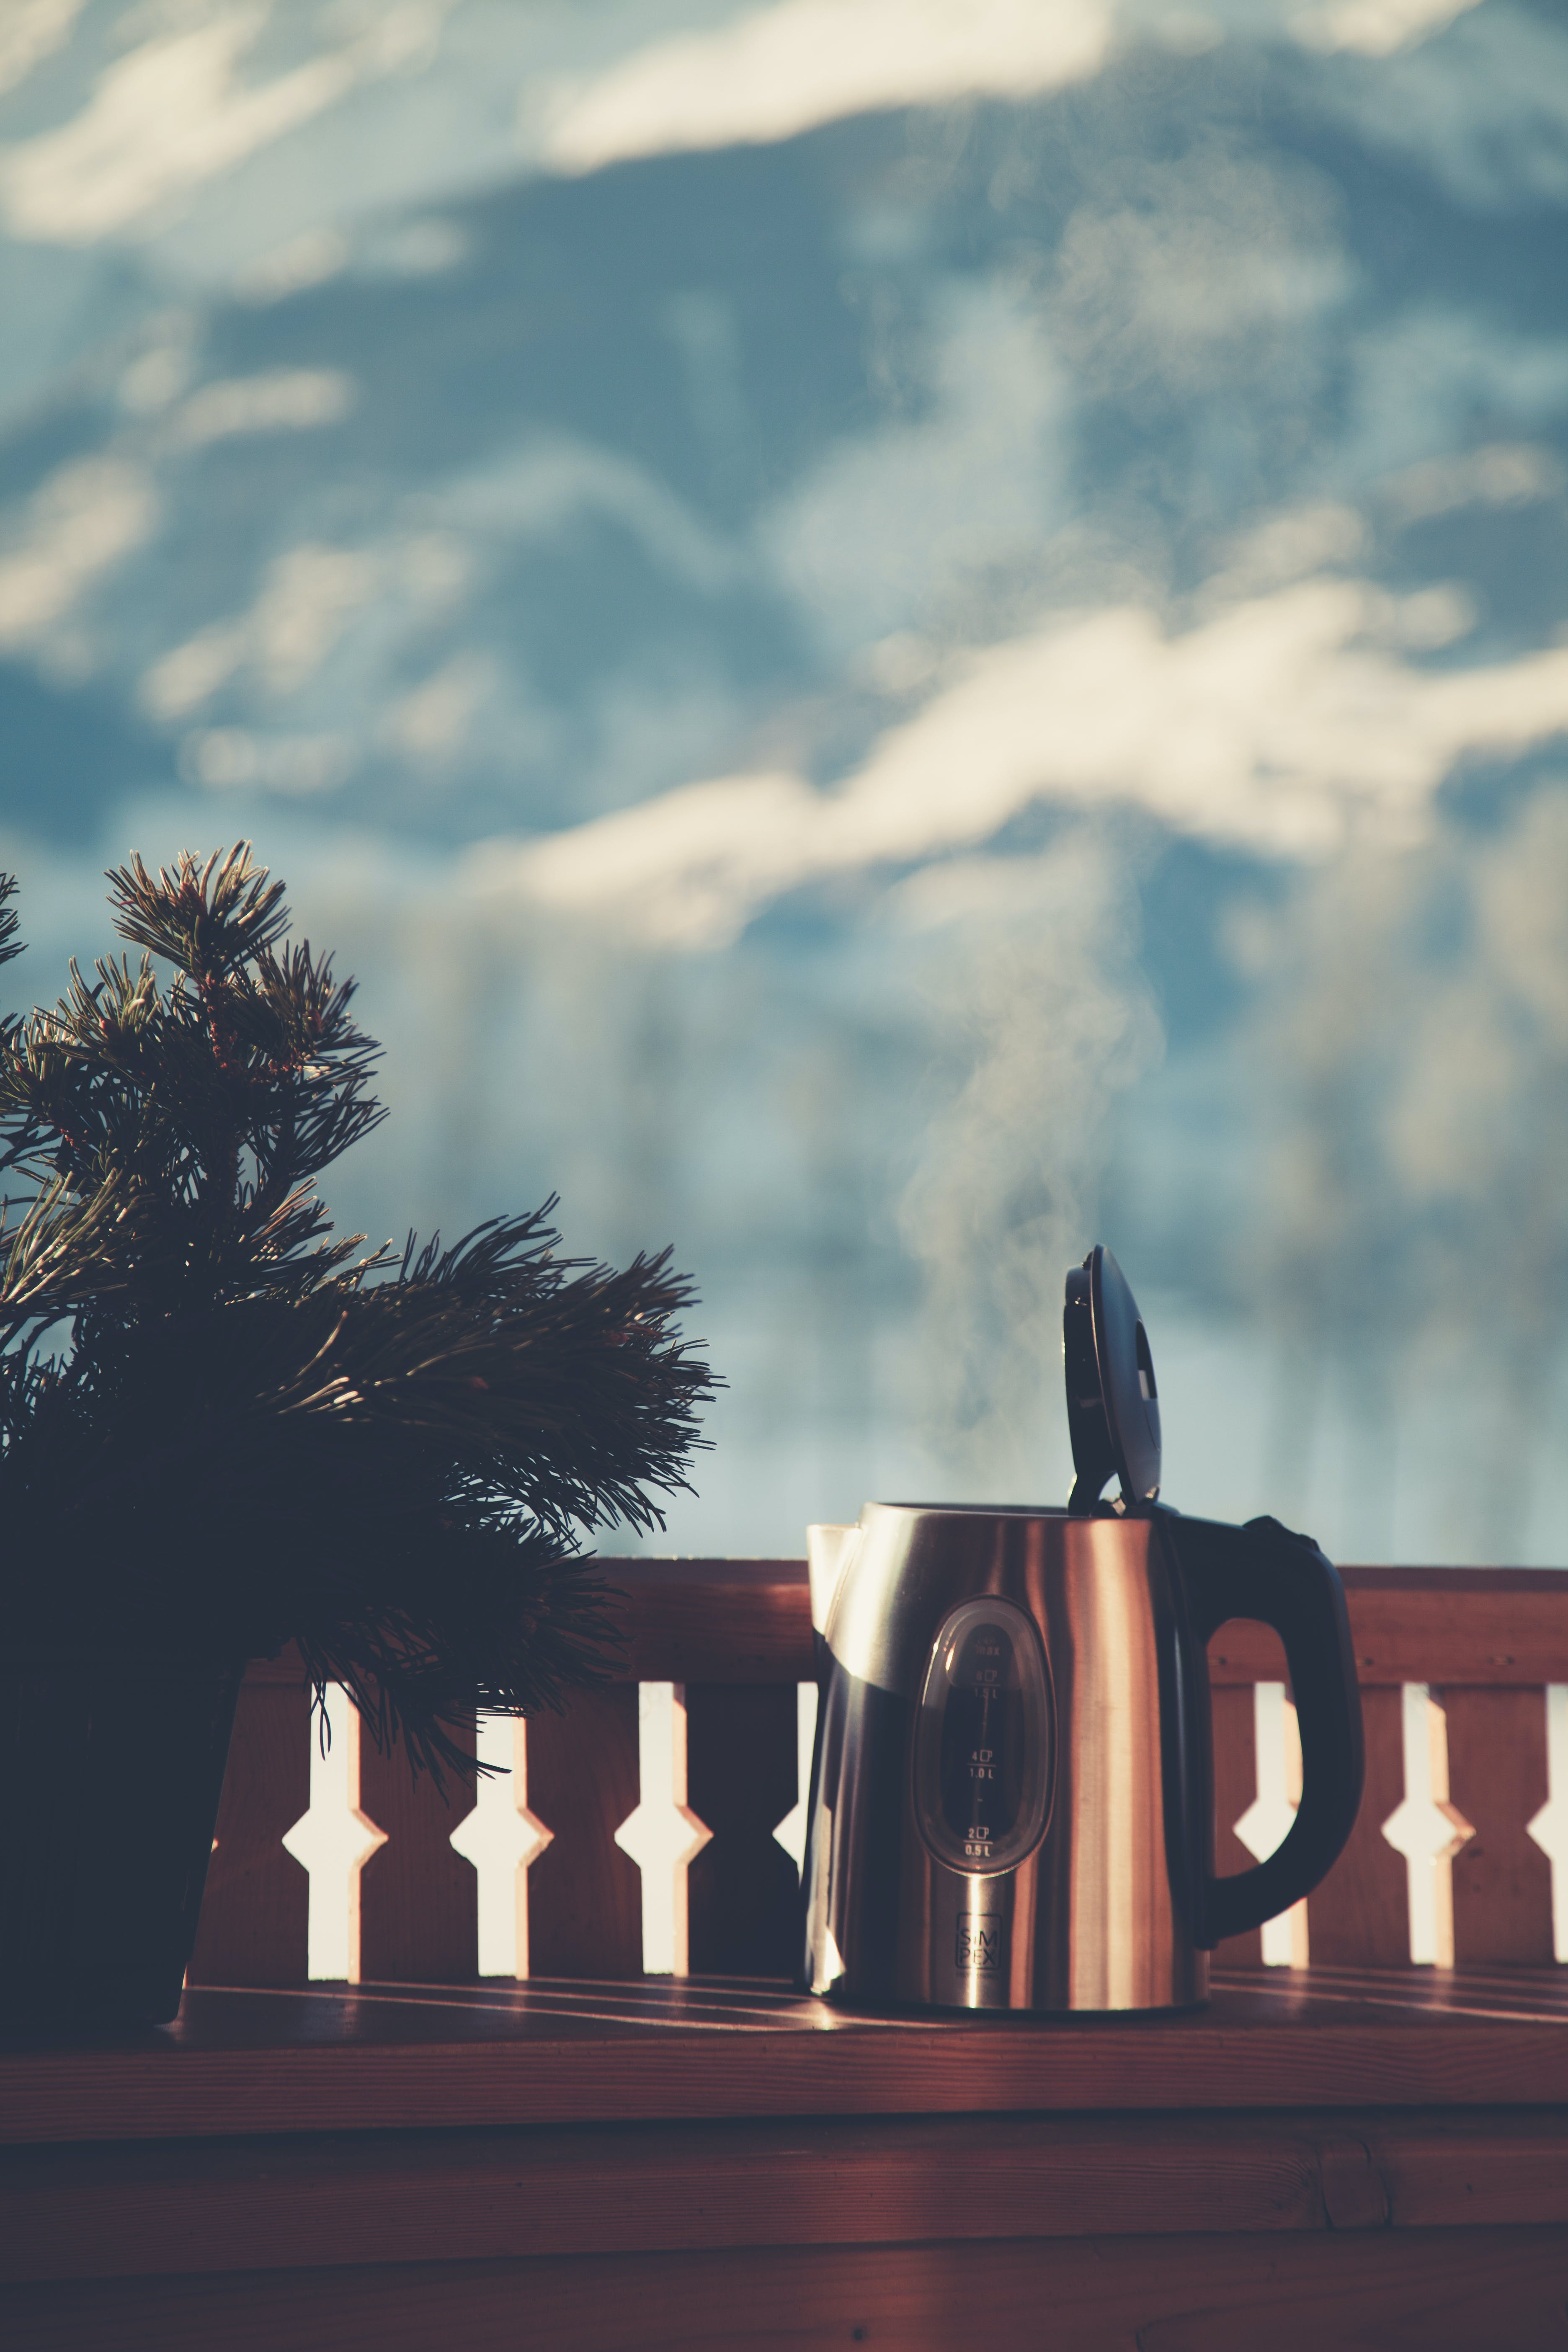 Selective Focus Photography of Silver Electric Kettle Beside Gray Balustrade